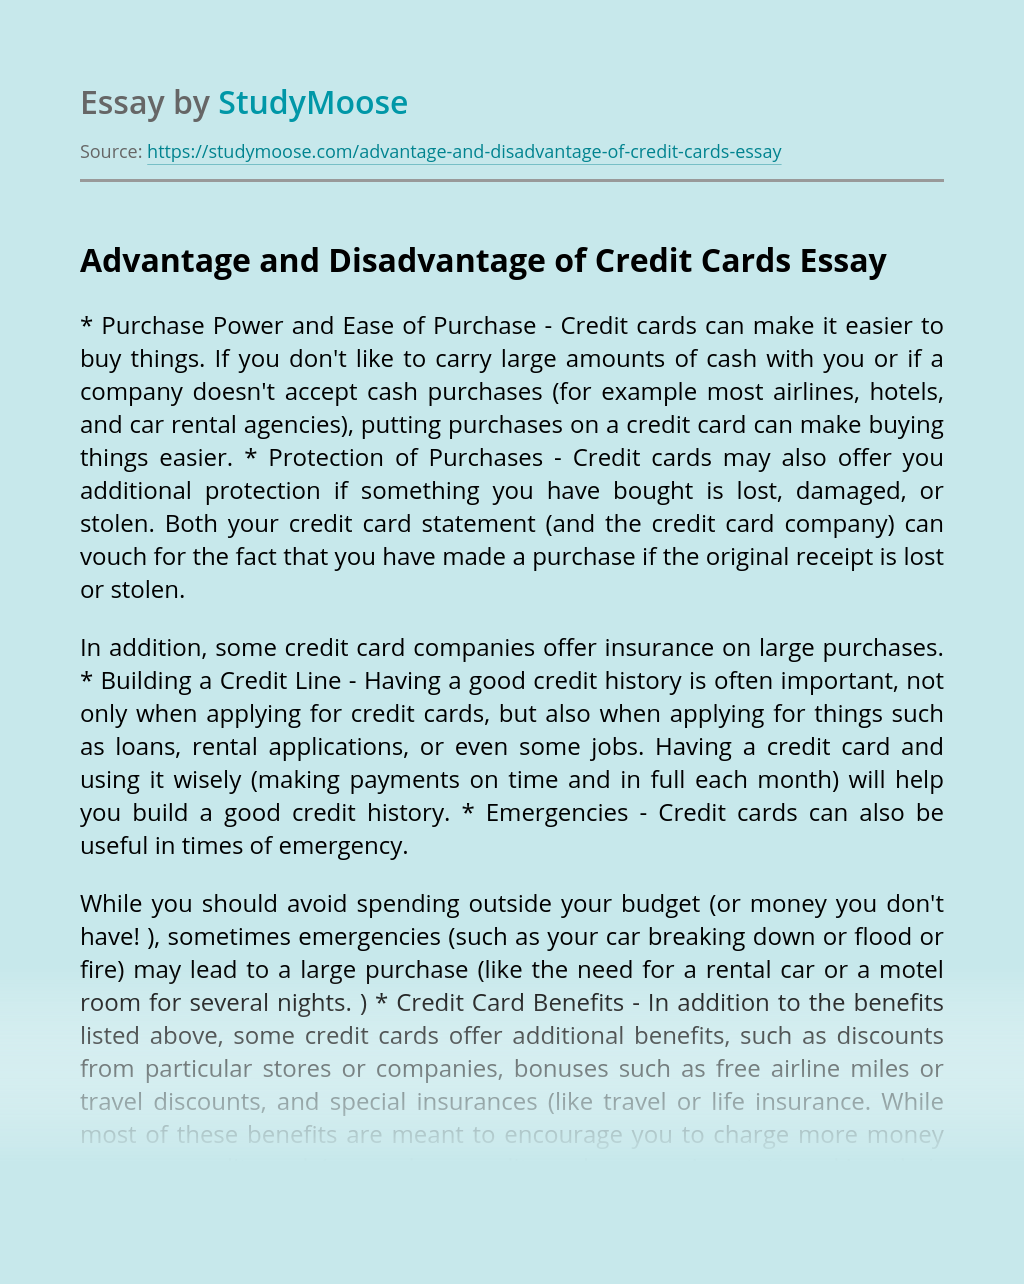 Advantage and Disadvantage of Credit Cards